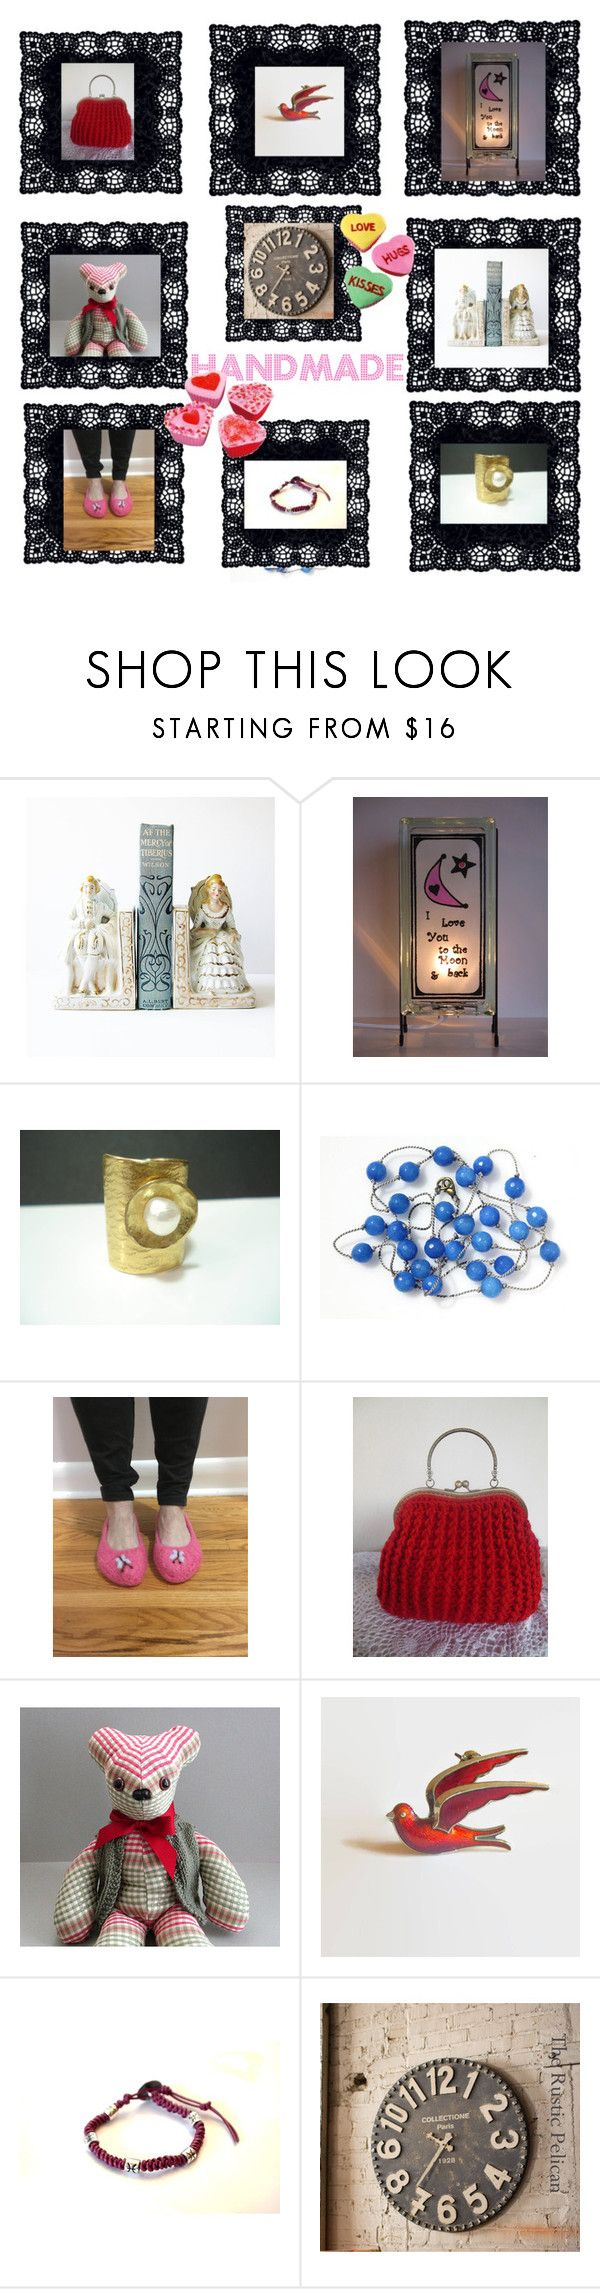 Handmade Unique Gifts by glowblocks on Polyvore featuring interior, interiors, interior design, home, home decor, interior decorating and Massif